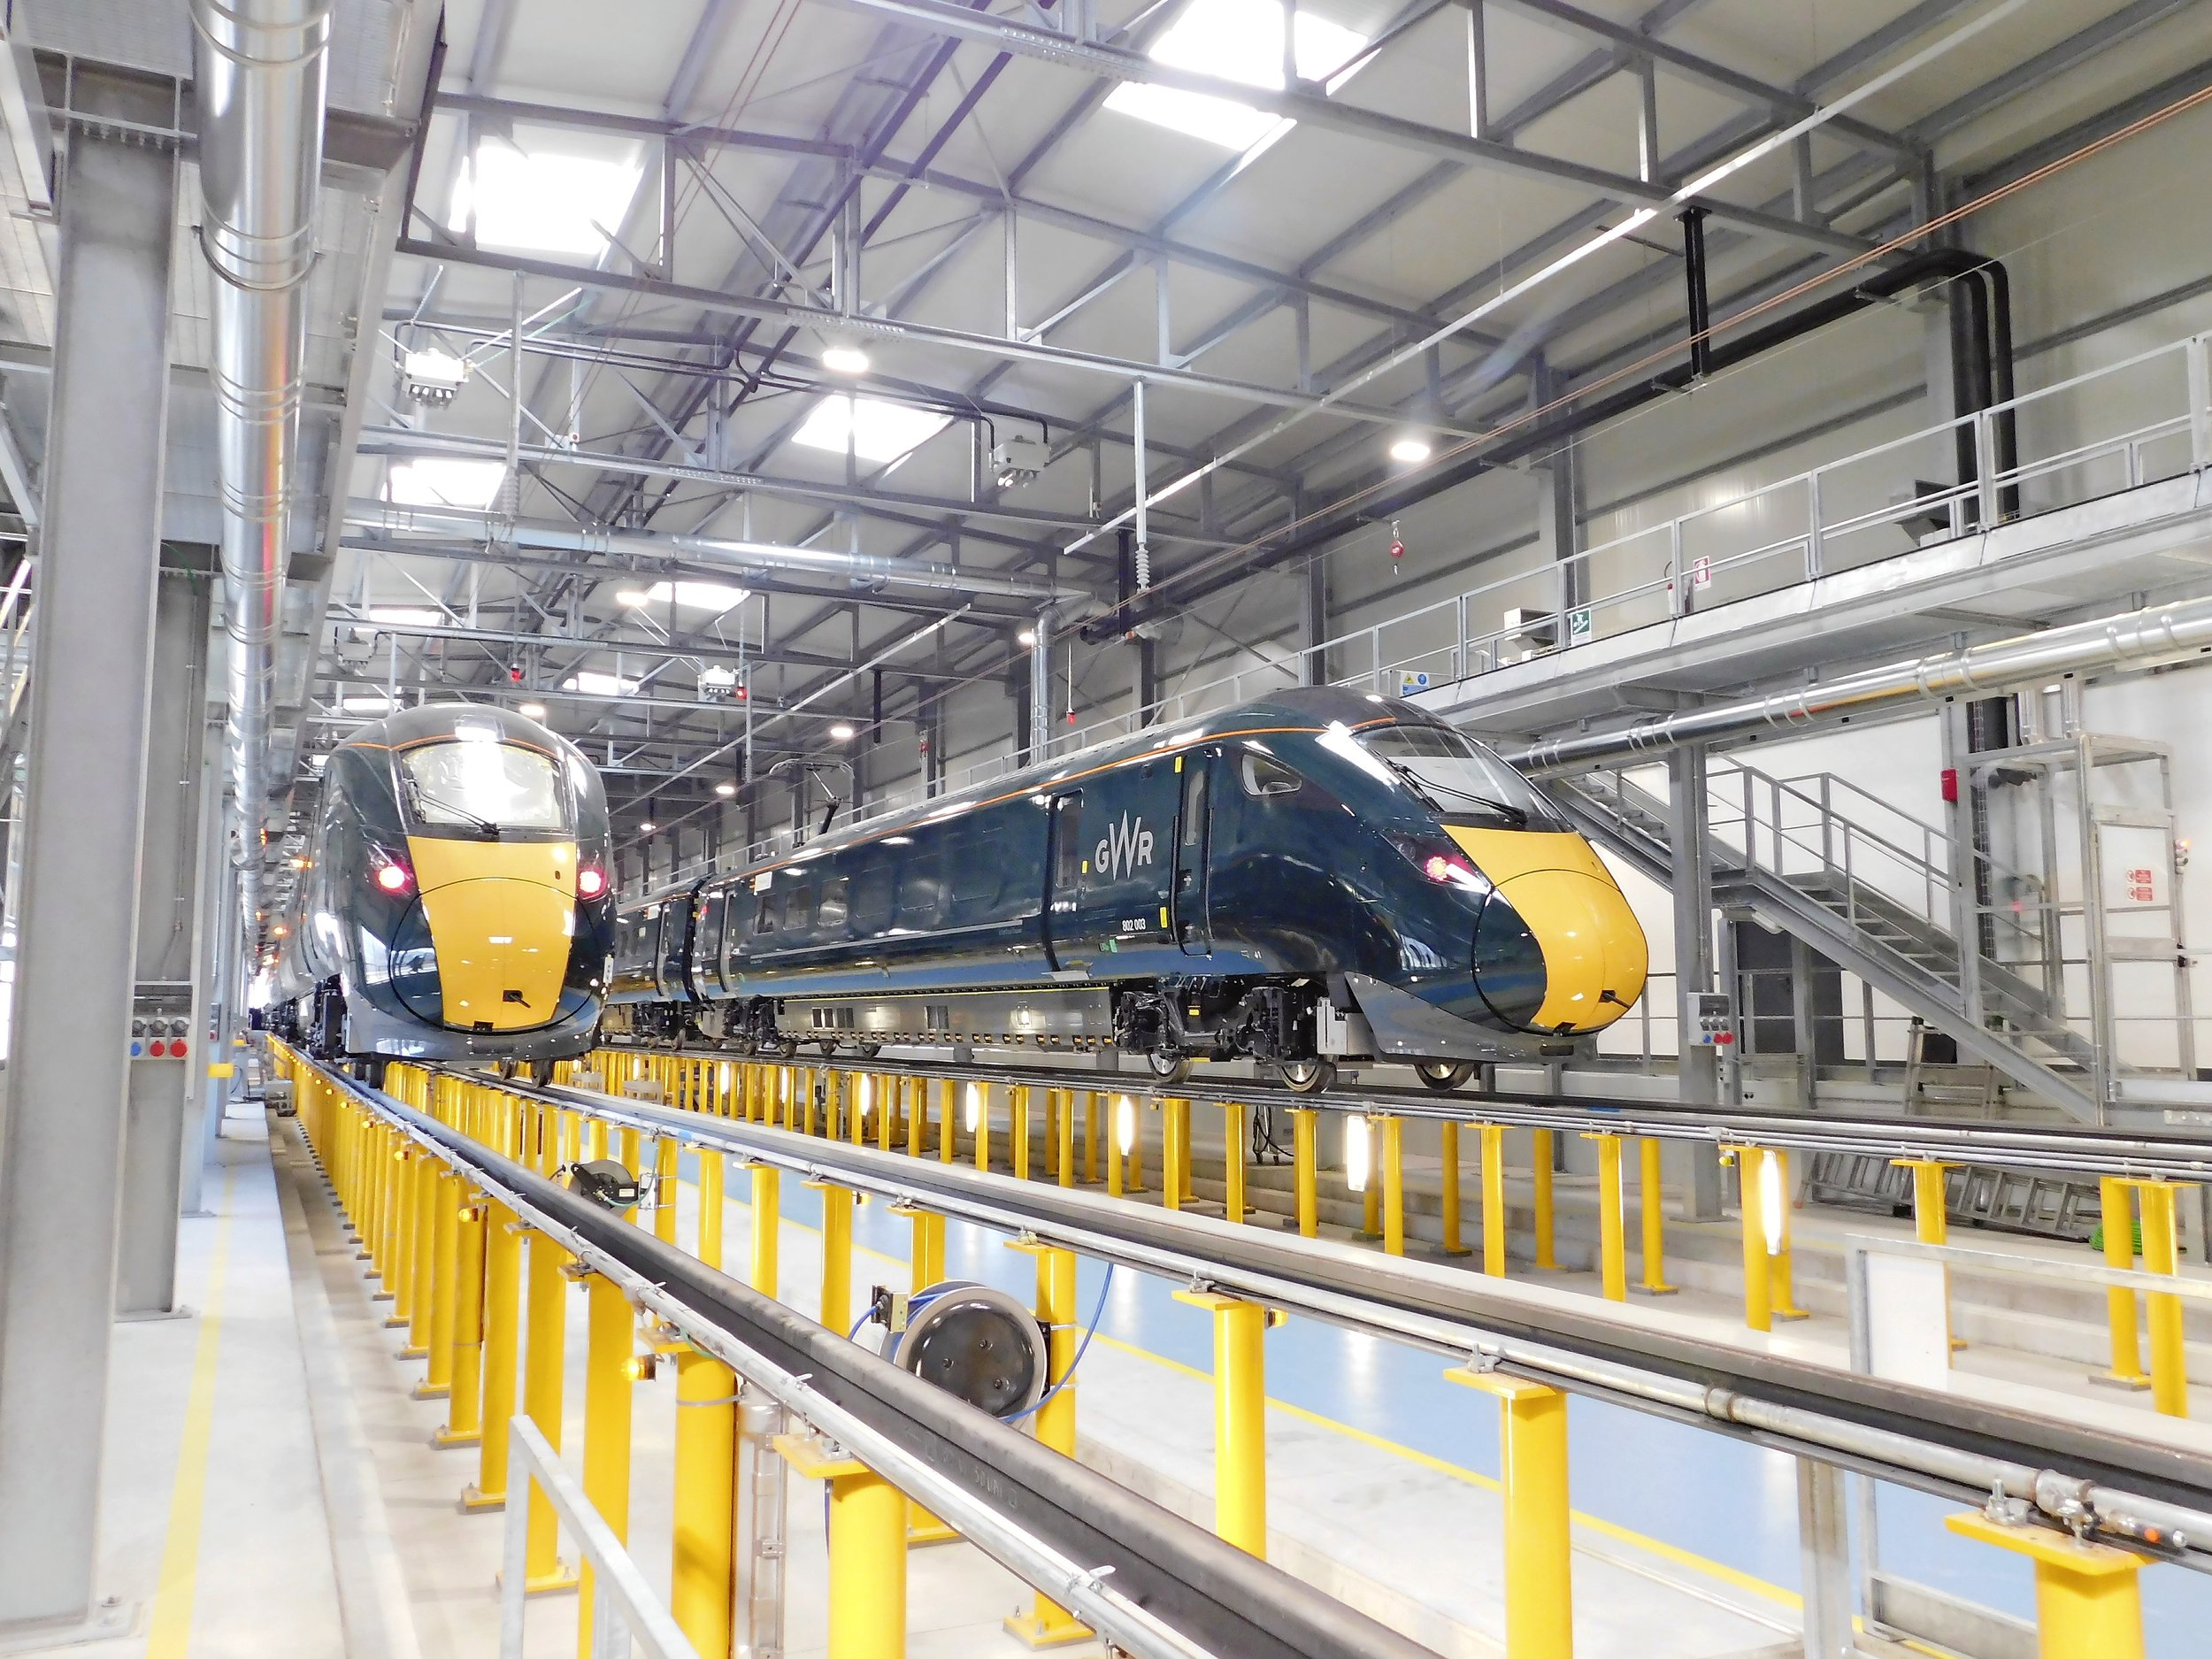 New Class 802 units 802003/4 are nearly ready to leave the factory in Pistoia, Italy, to join their sister Class 800s with GWR. Richard Clinnick/RAIL